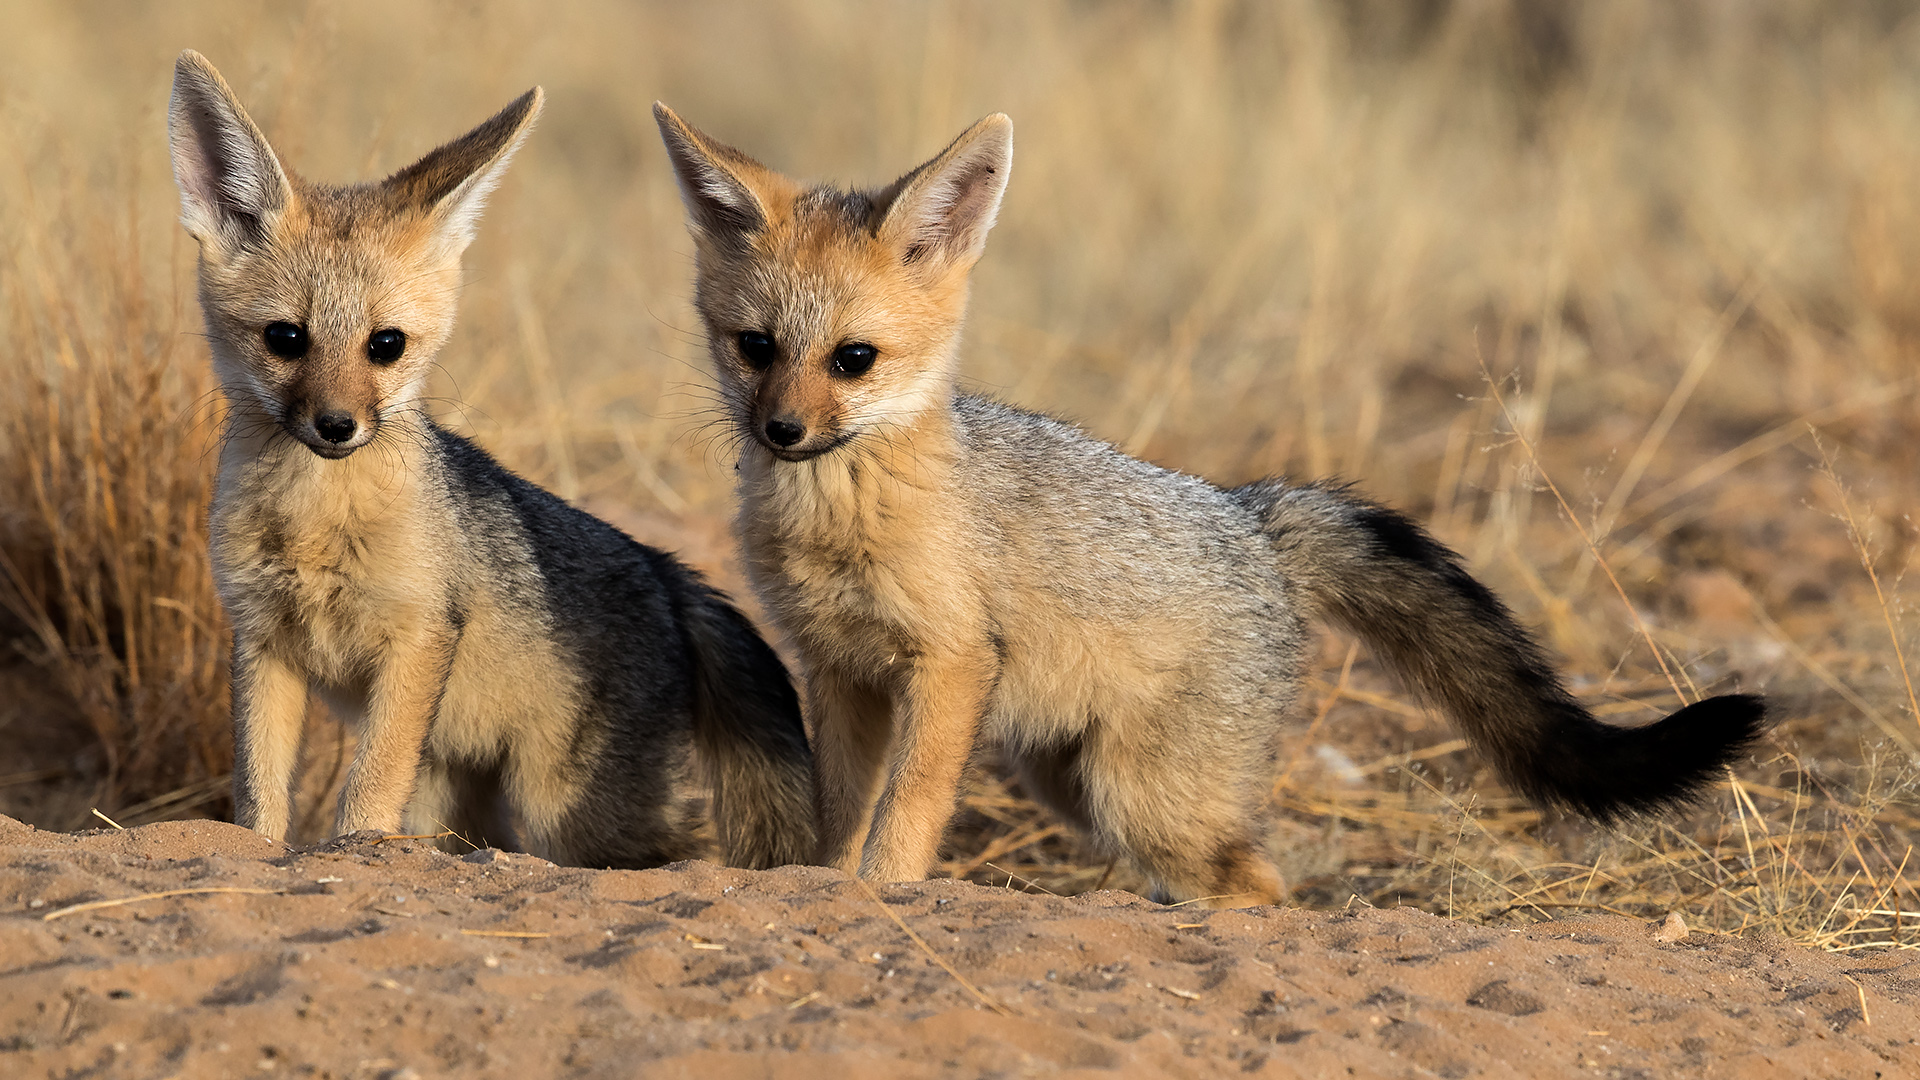 Jackals by Derek De Beer